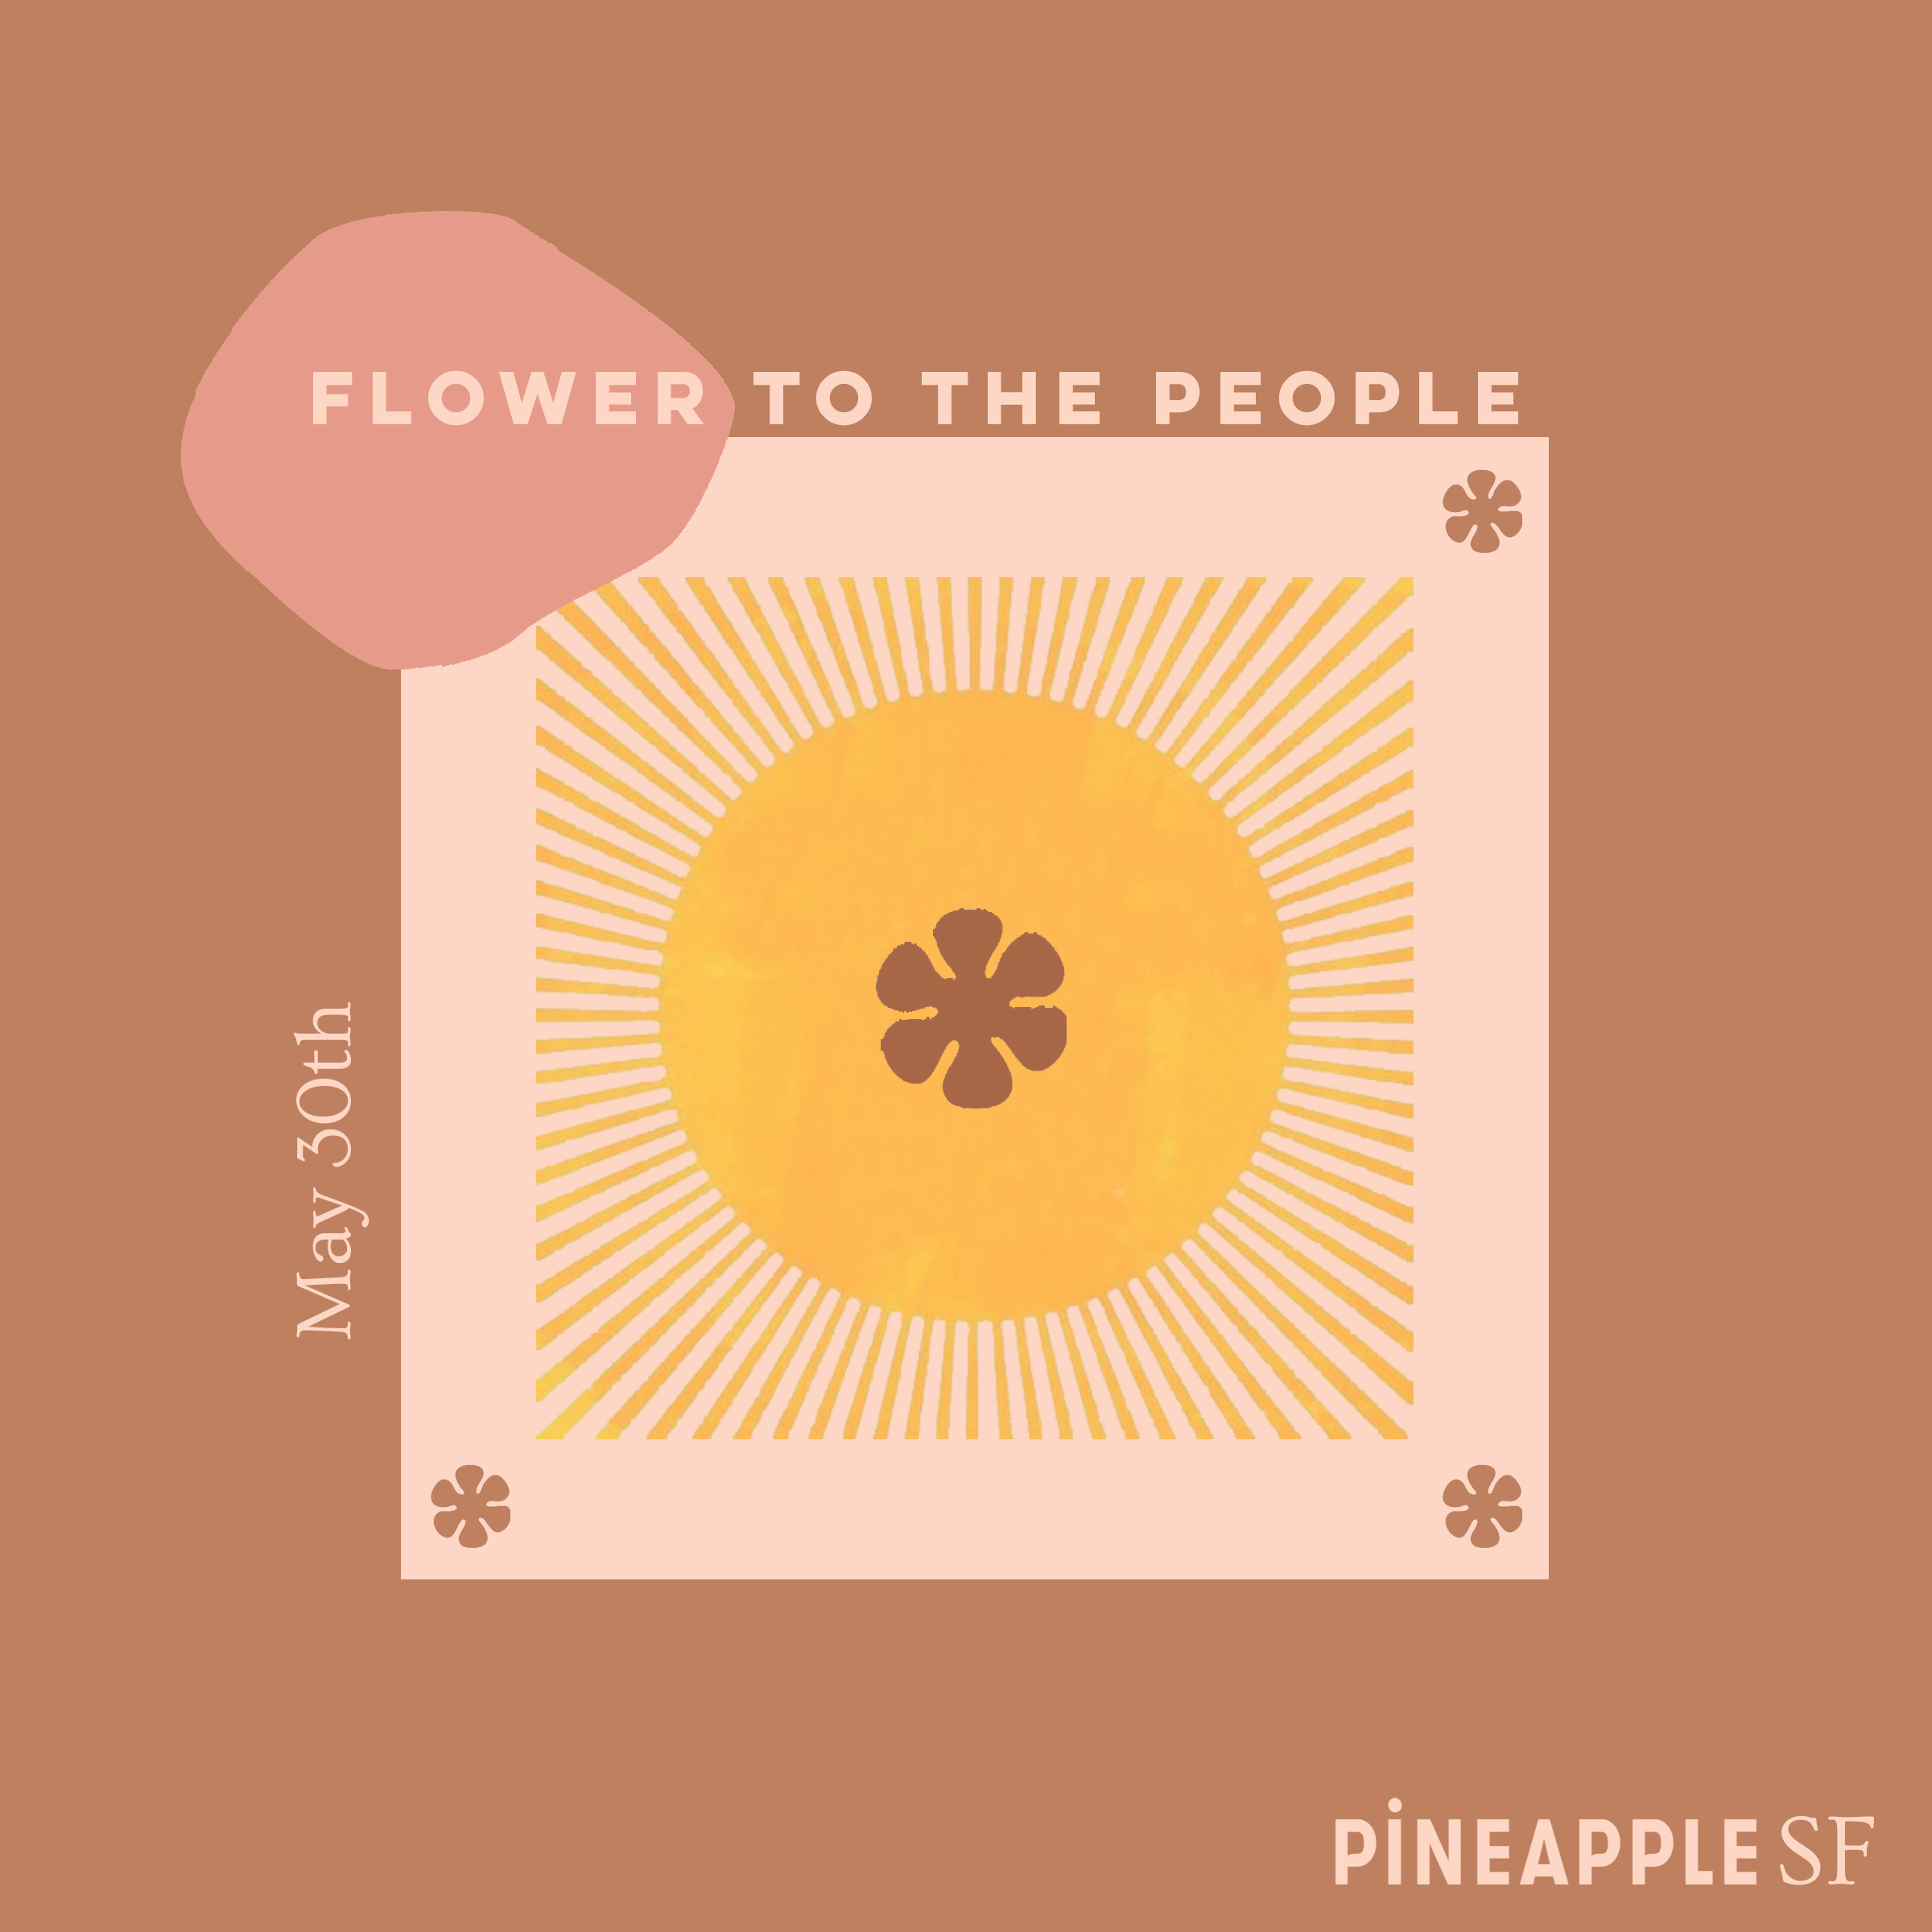 pineapple SF presents: Flower to the People